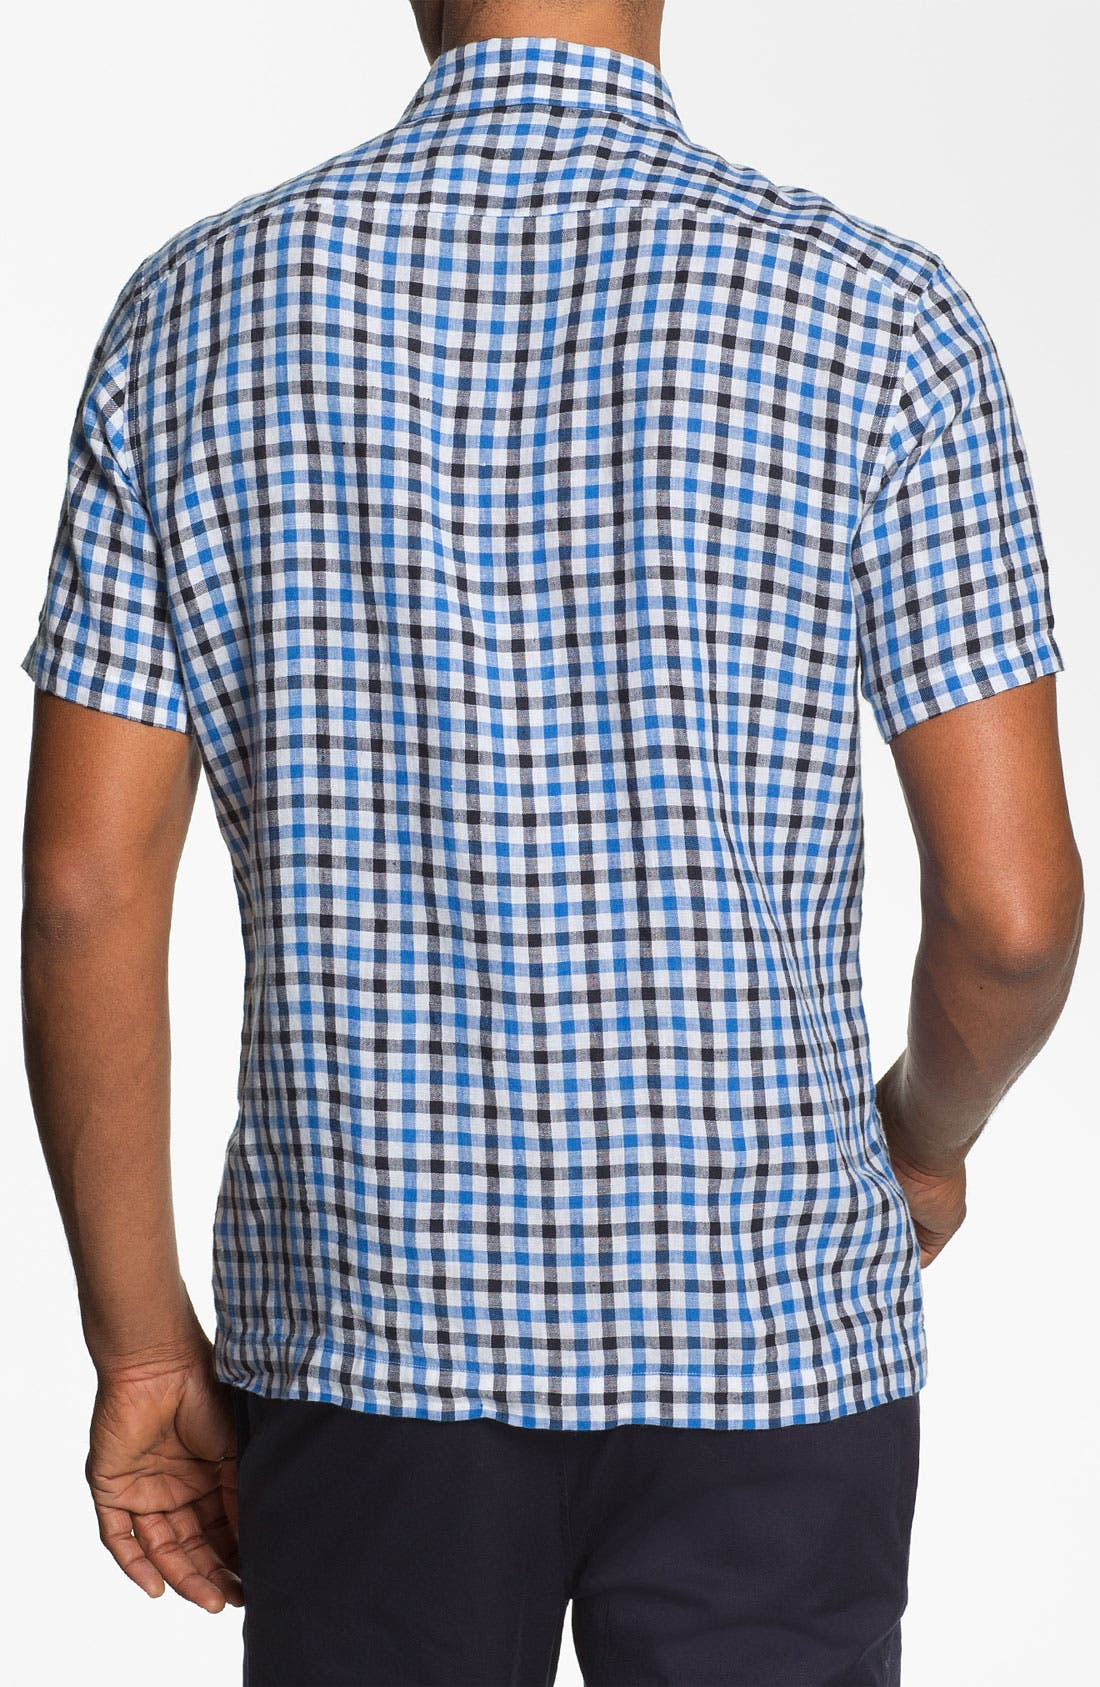 Alternate Image 2  - Michael Kors 'Percy Check' Tailored Fit Sport Shirt